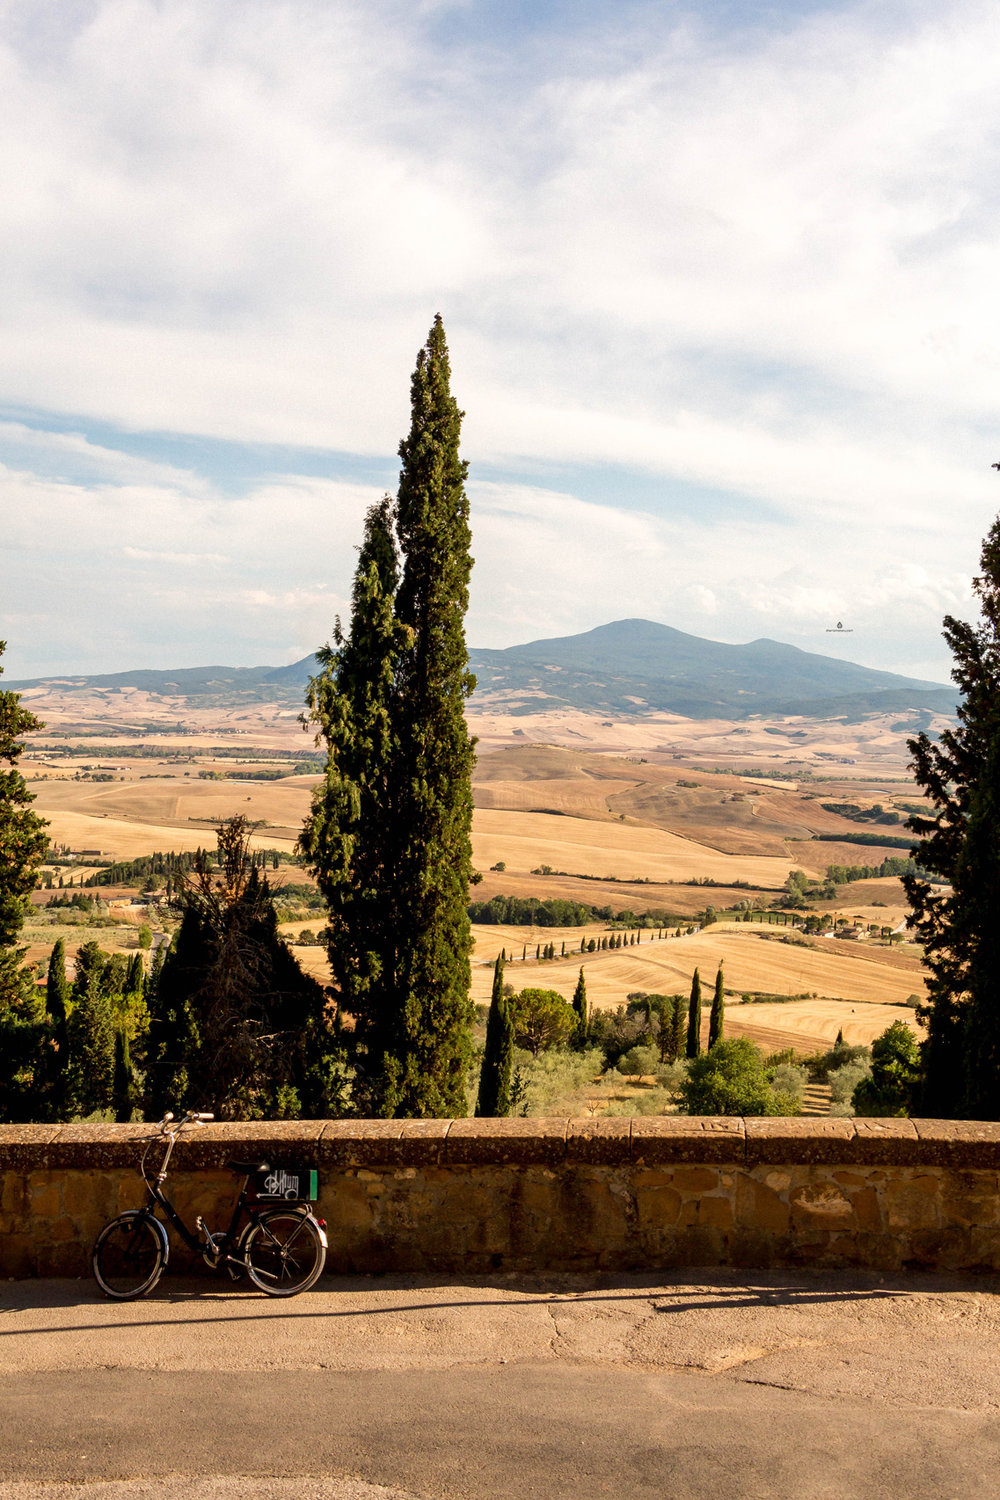 The views from Pienza, Tuscany